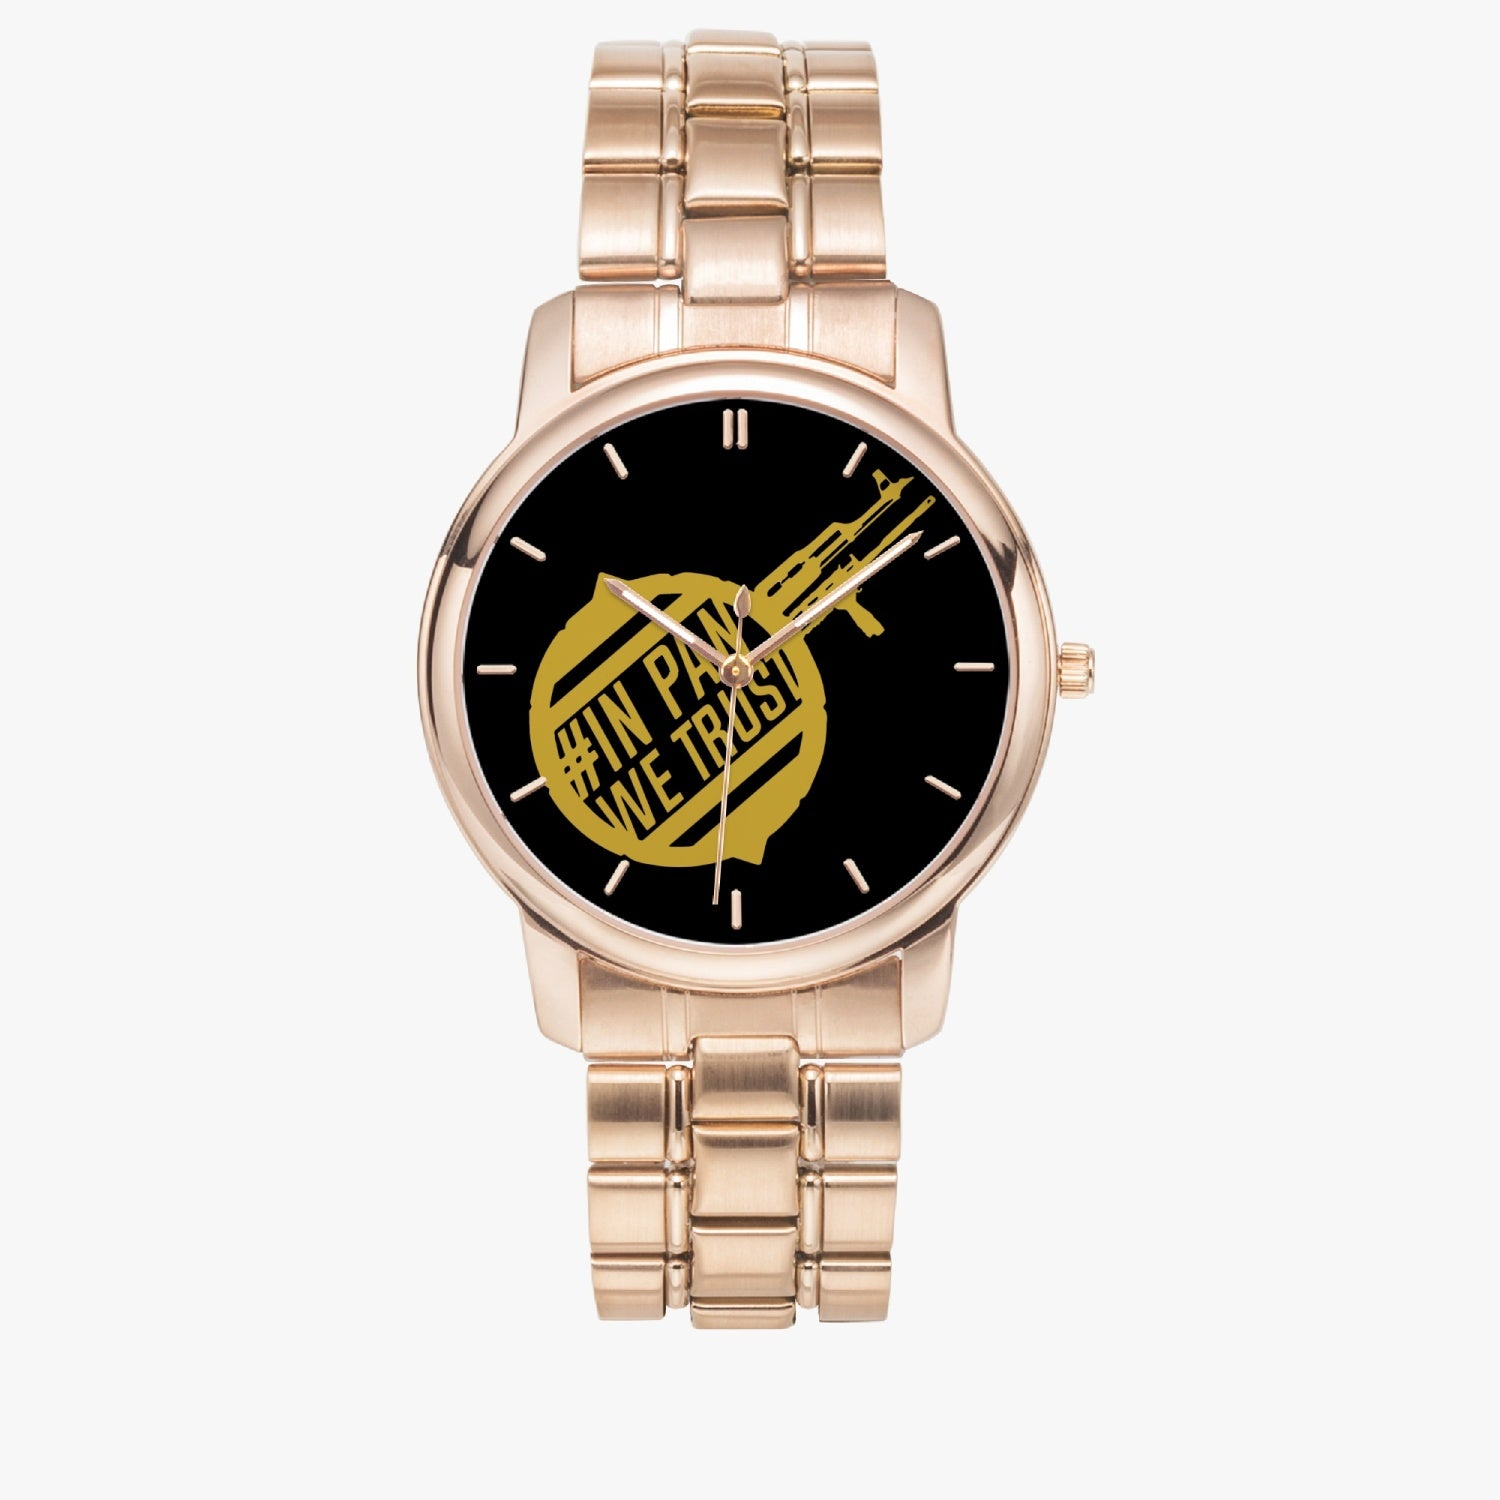 inpan Stainless Steel Quartz Watch